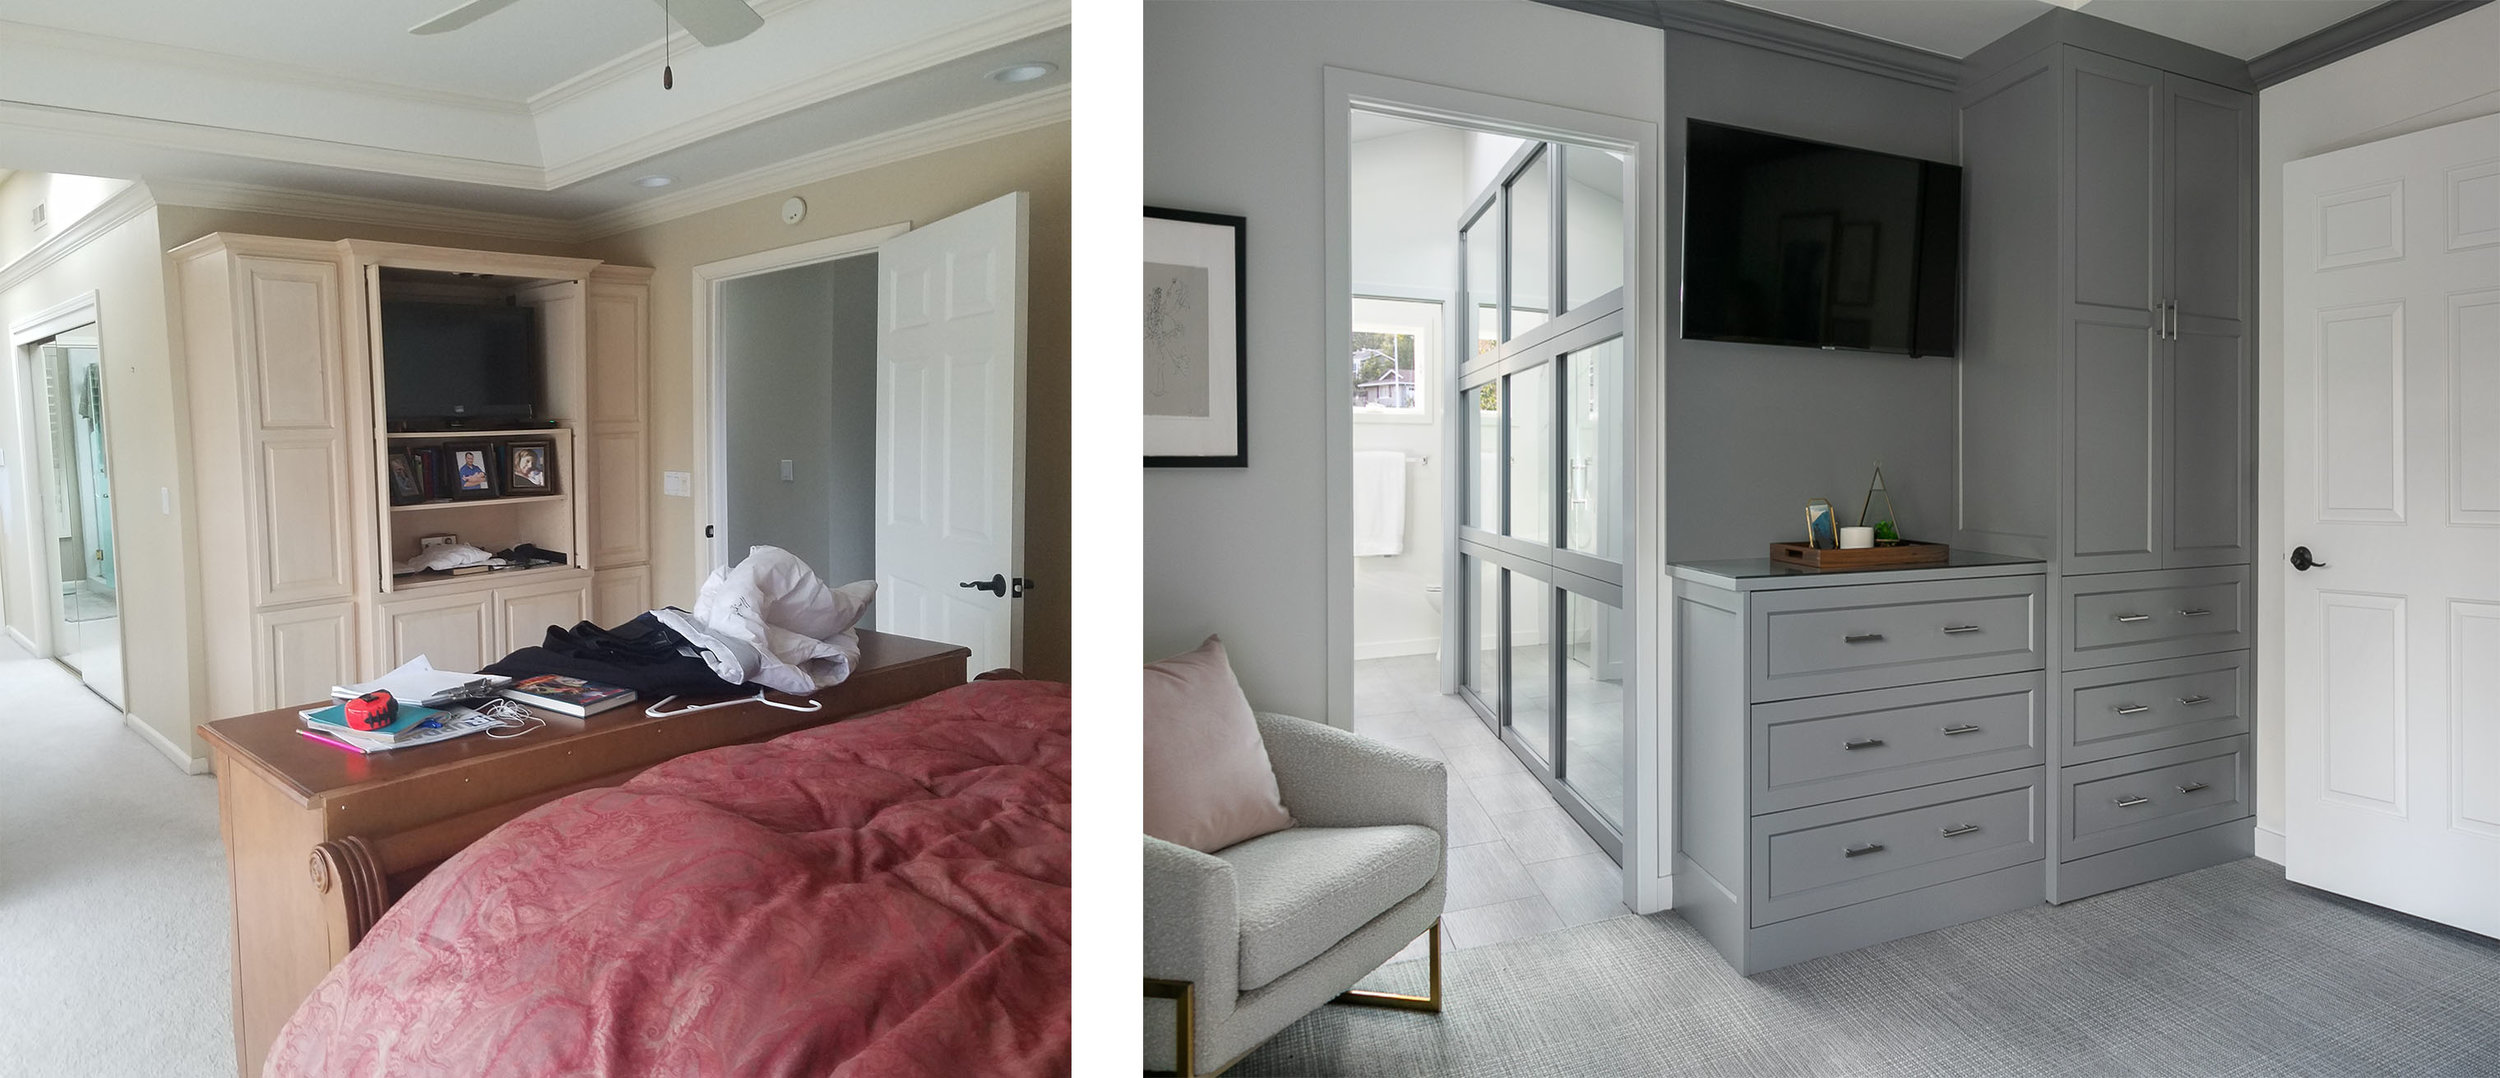 Master Suite Before & After